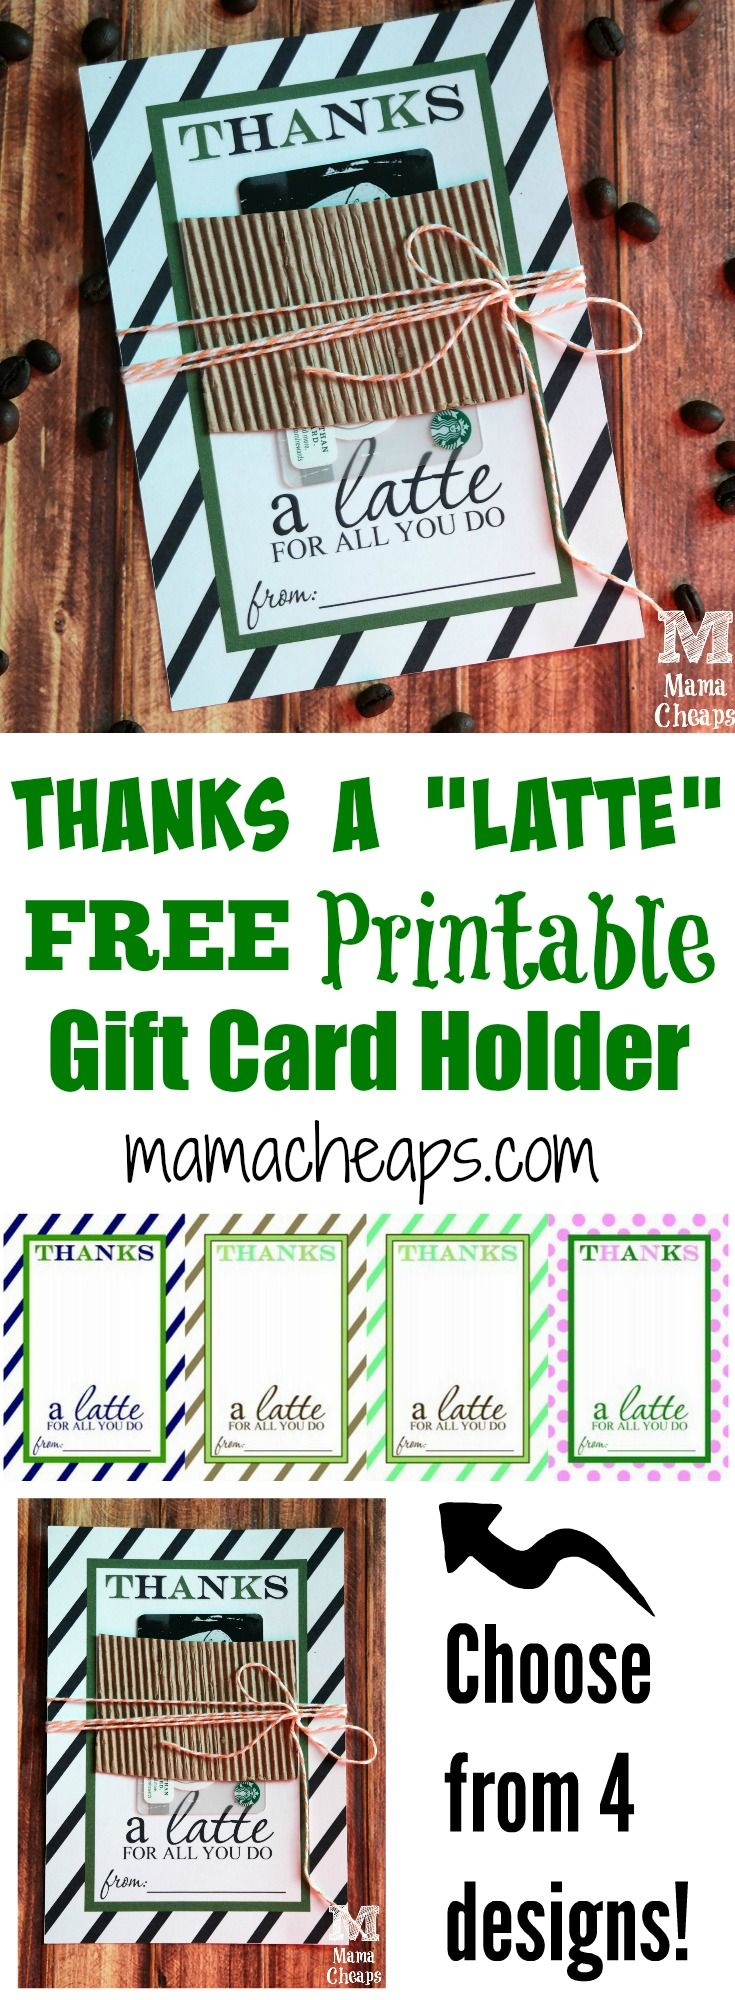 Thanks a latte card teacher appreciation gift printable gift card holder coffee lover gift groomsman gift thank you note bridesmaid gift cup